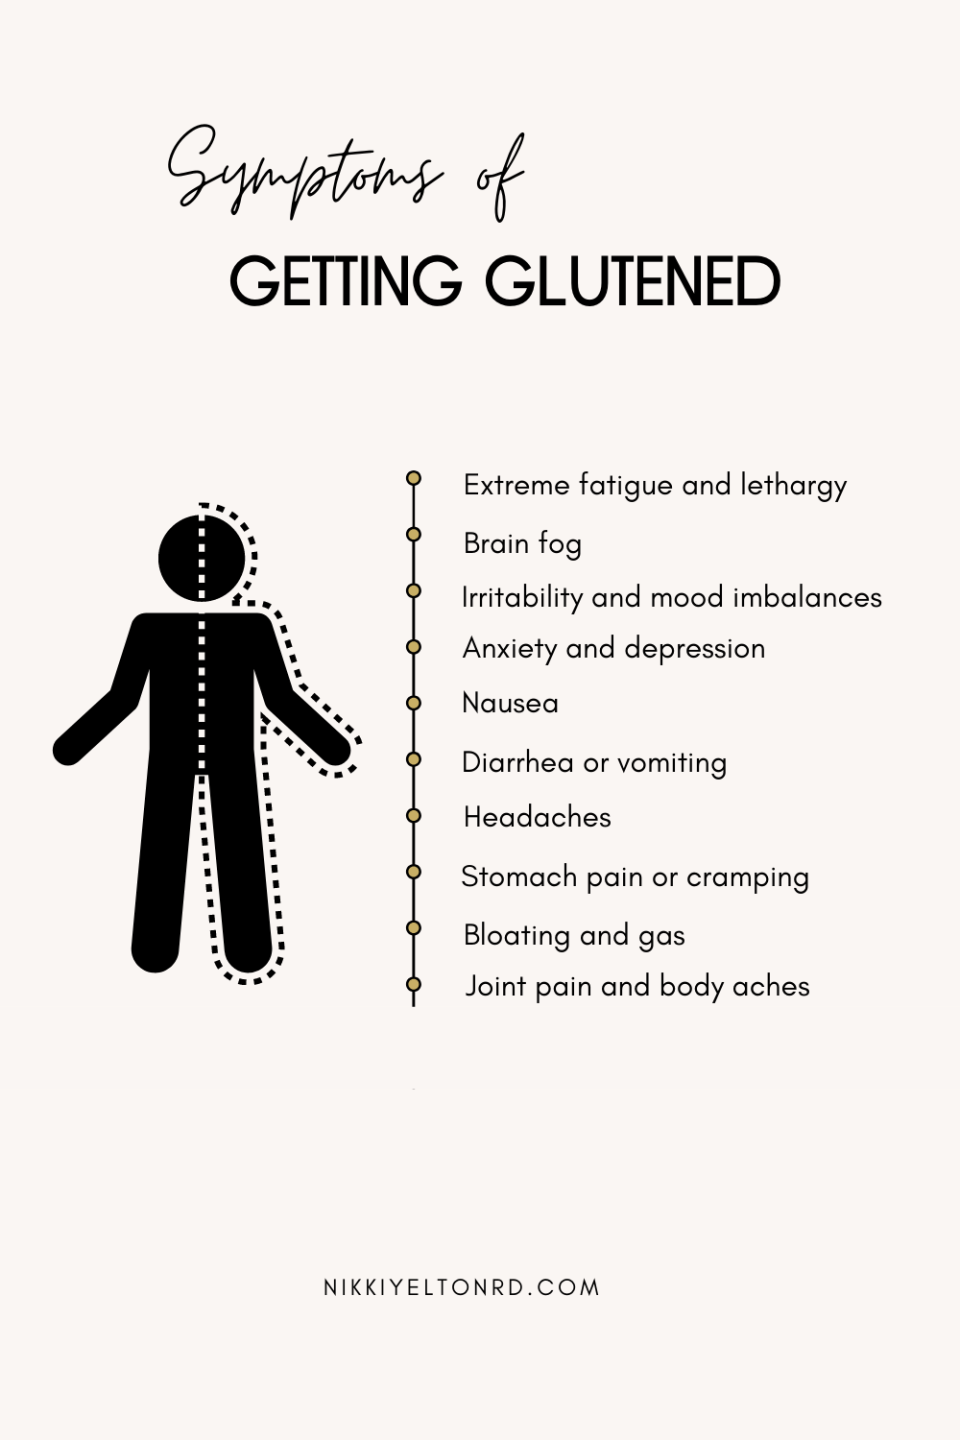 How gluten affects your health and the symptoms that it can cause